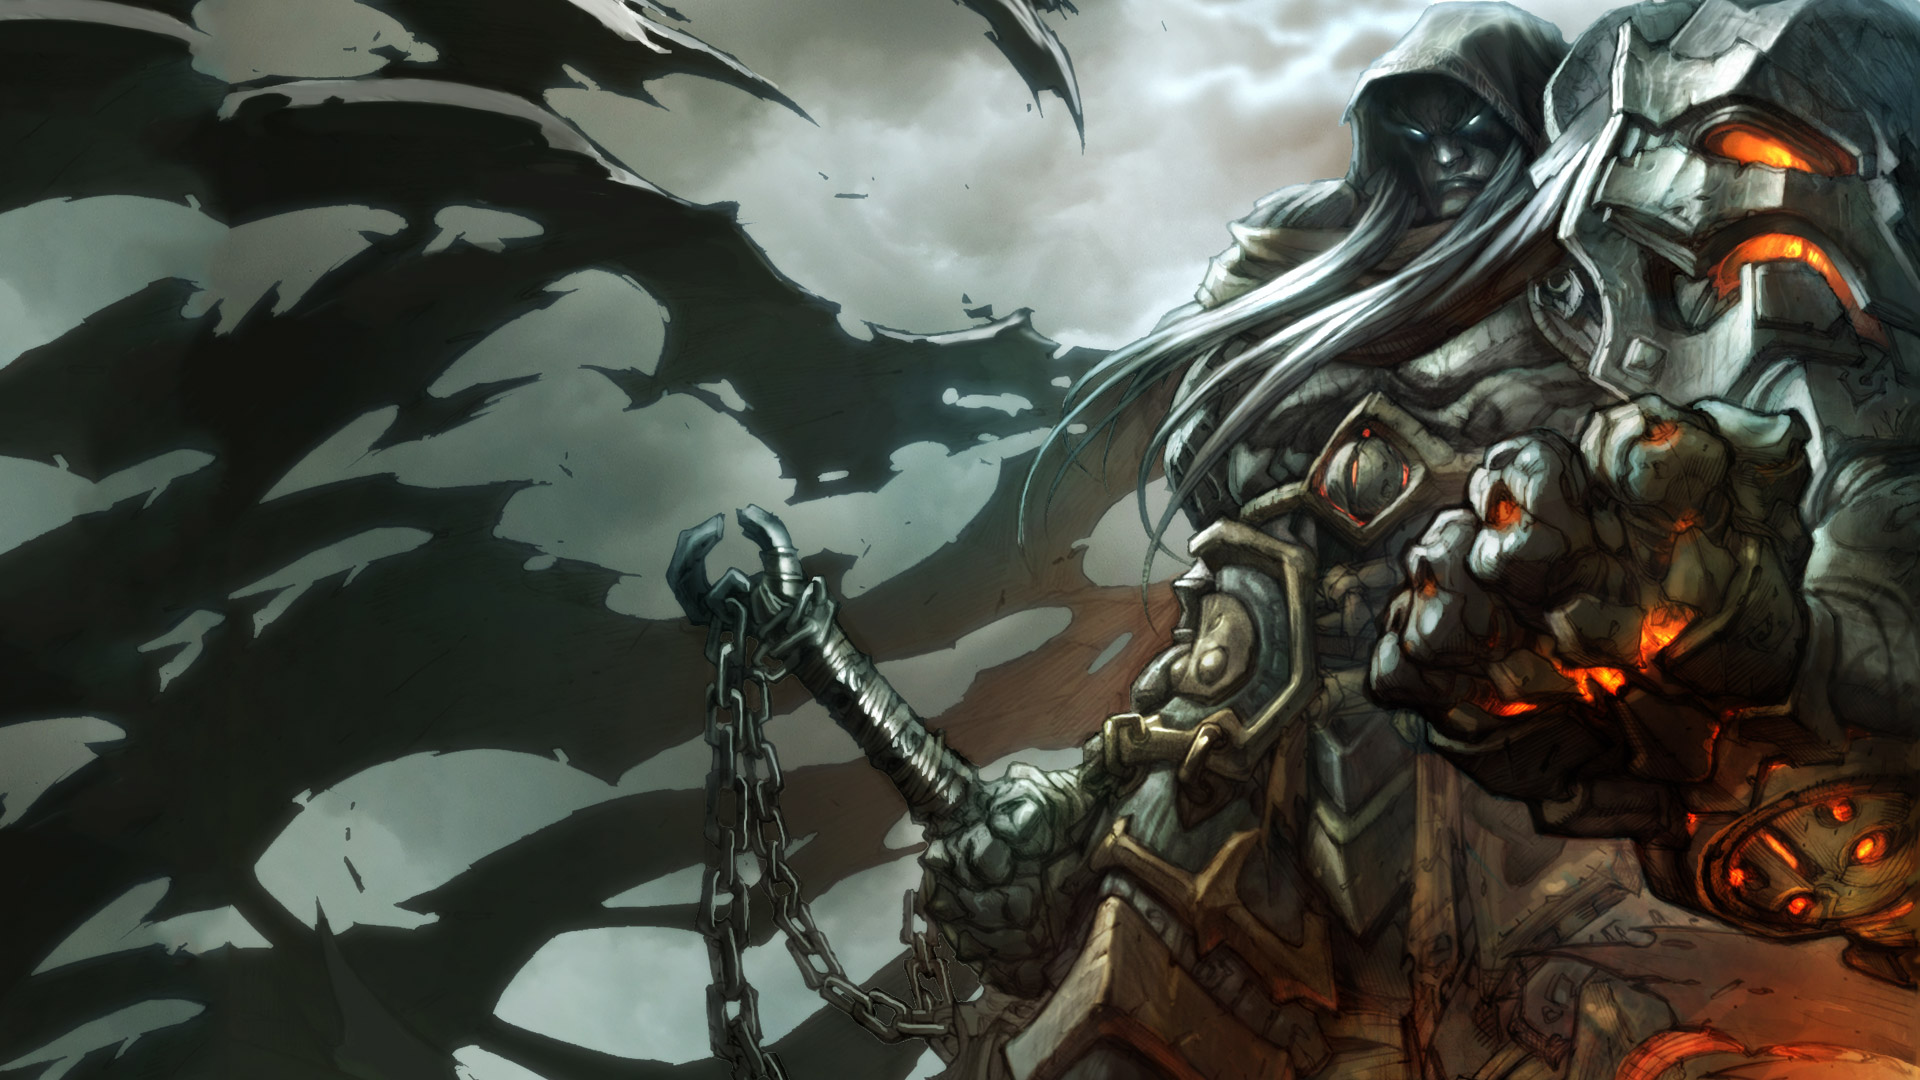 Free Darksiders Wallpaper in 1920x1080